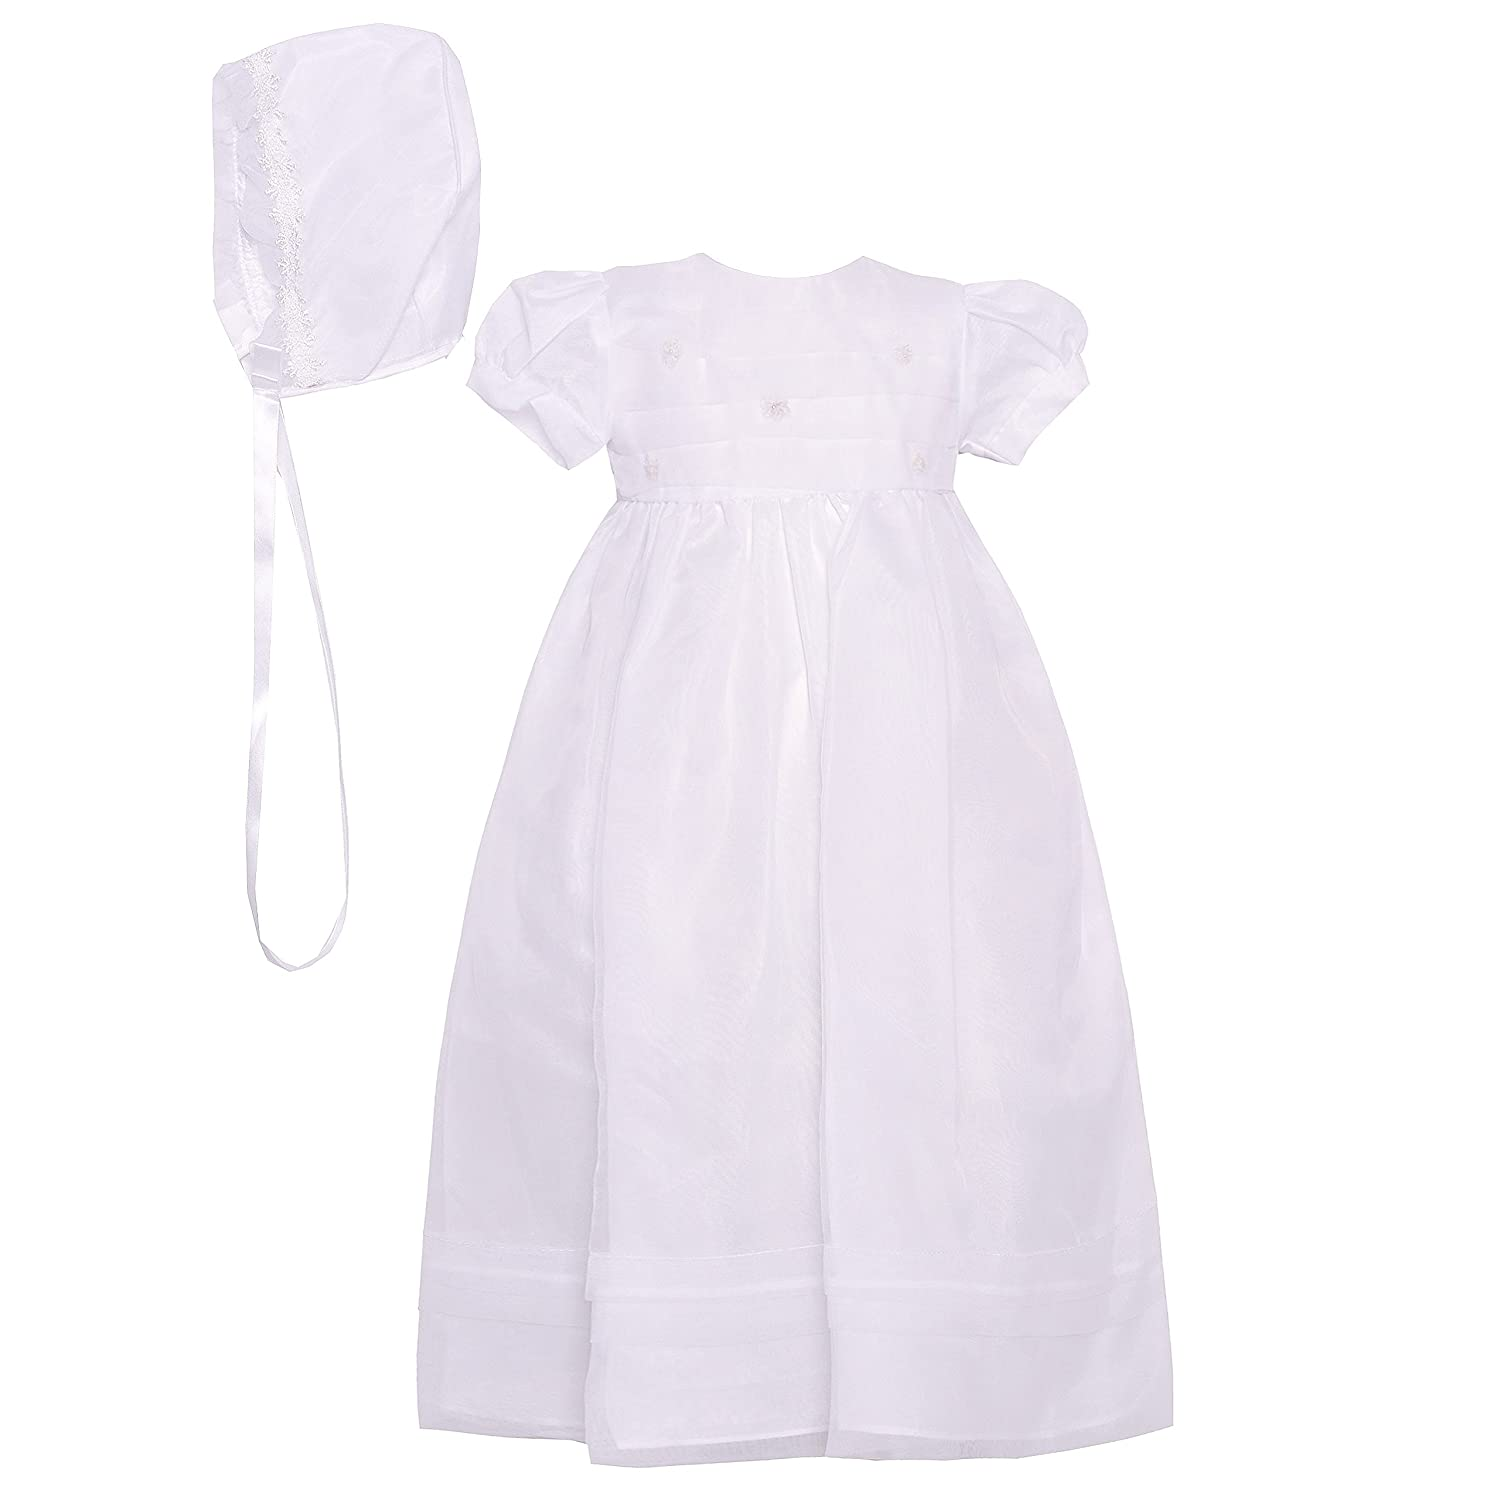 The Childrens Hour Baby Girls White Fully Lined Sheer Organza Gown 3m 24m